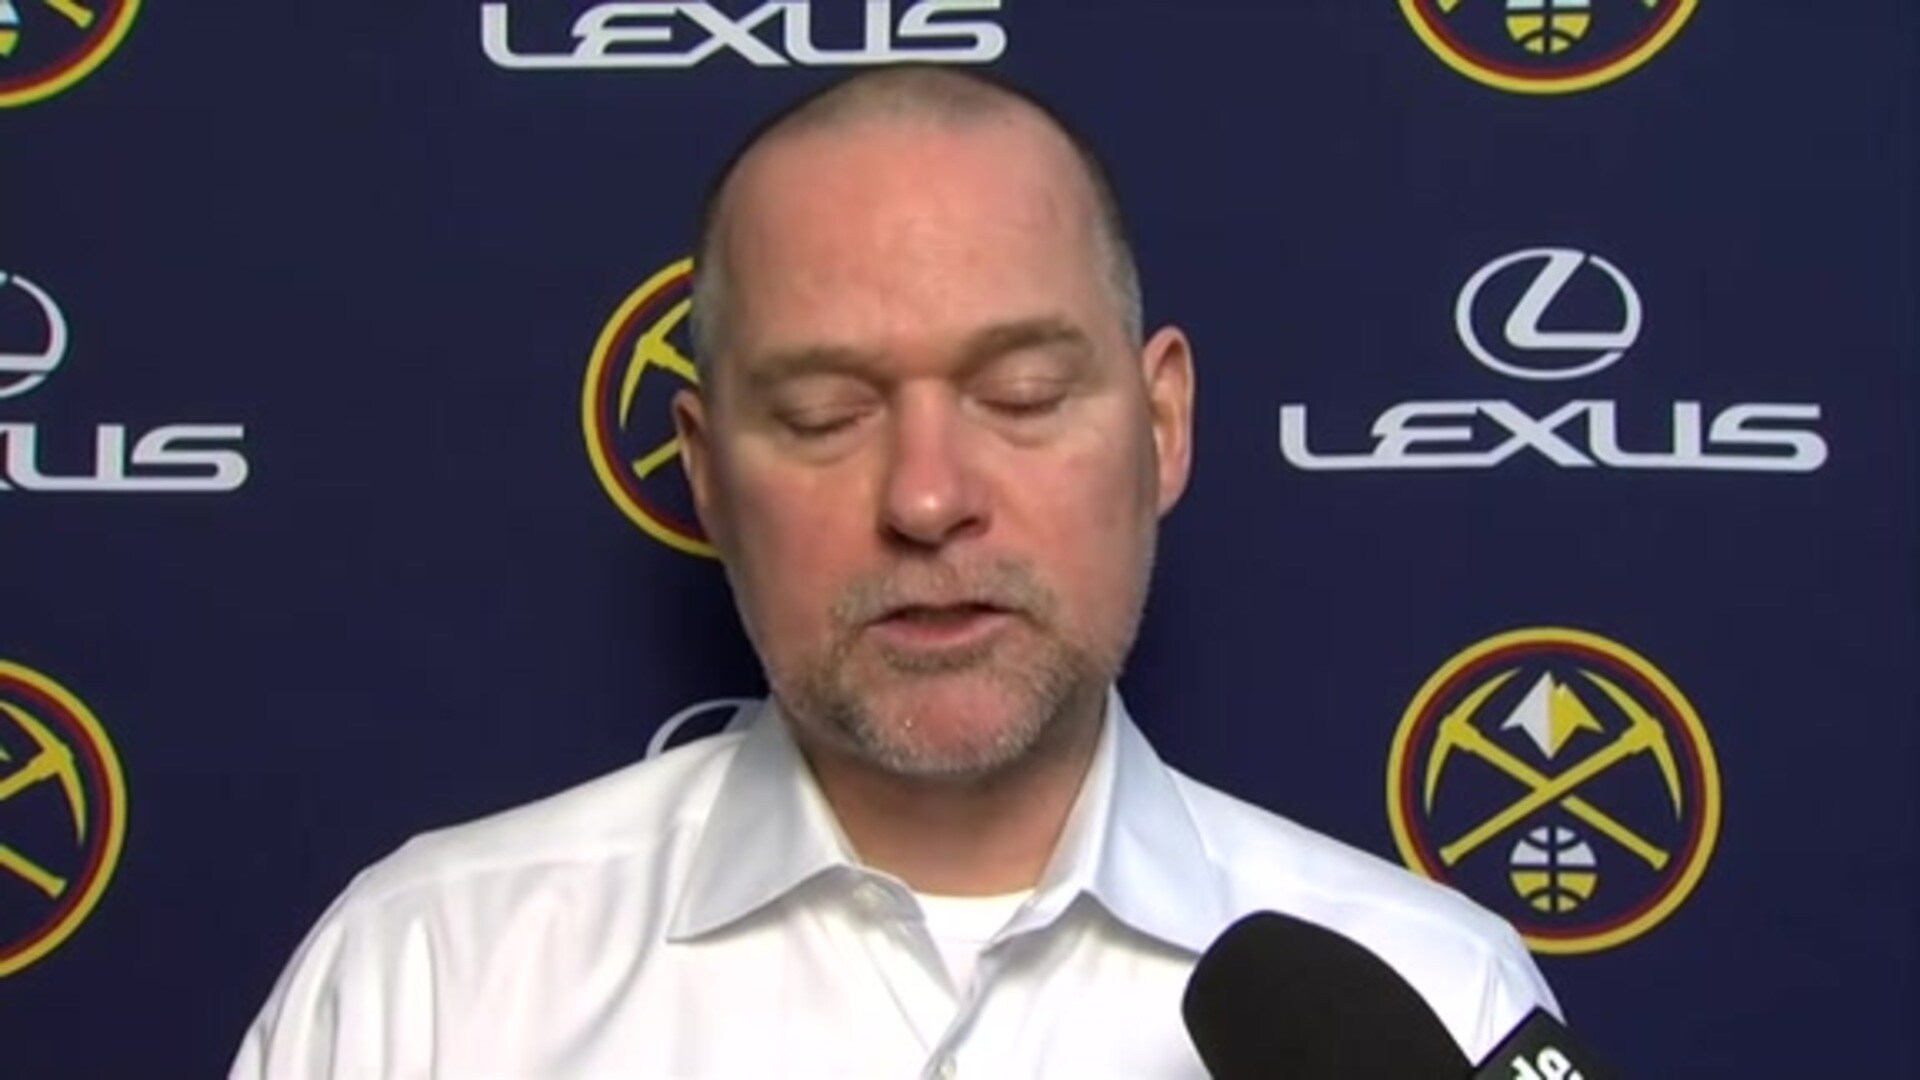 Coach Malone's postgame comments after loss to Grizzlies